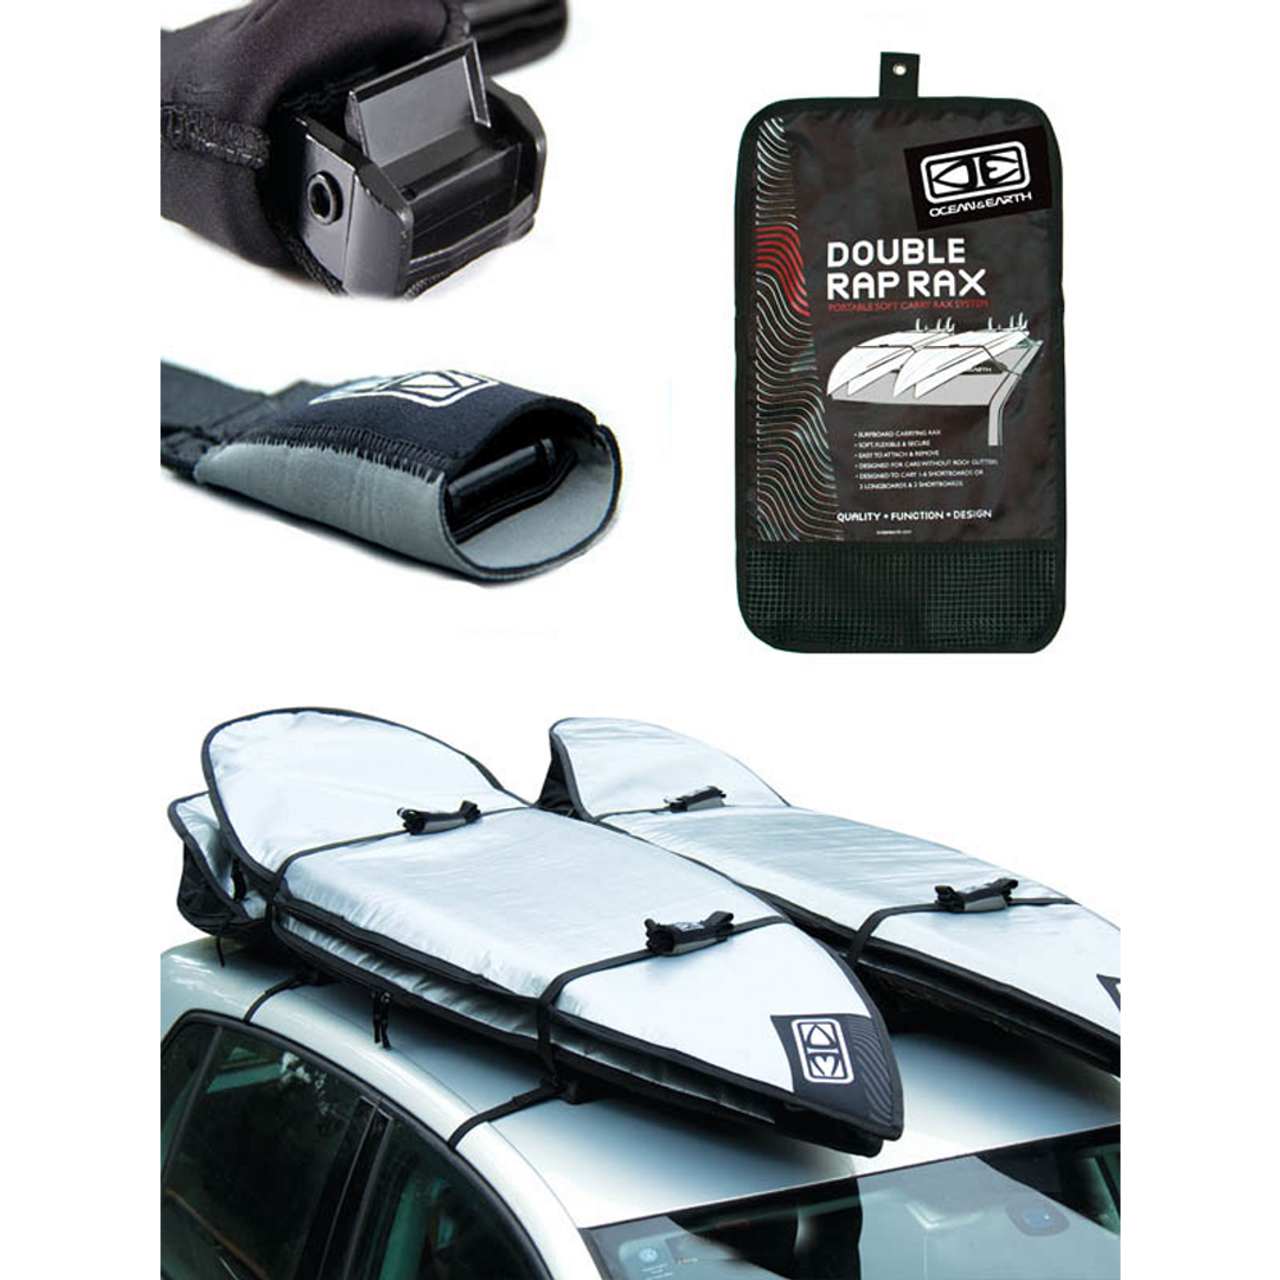 Double Roof Rack System | Ocean and Earth